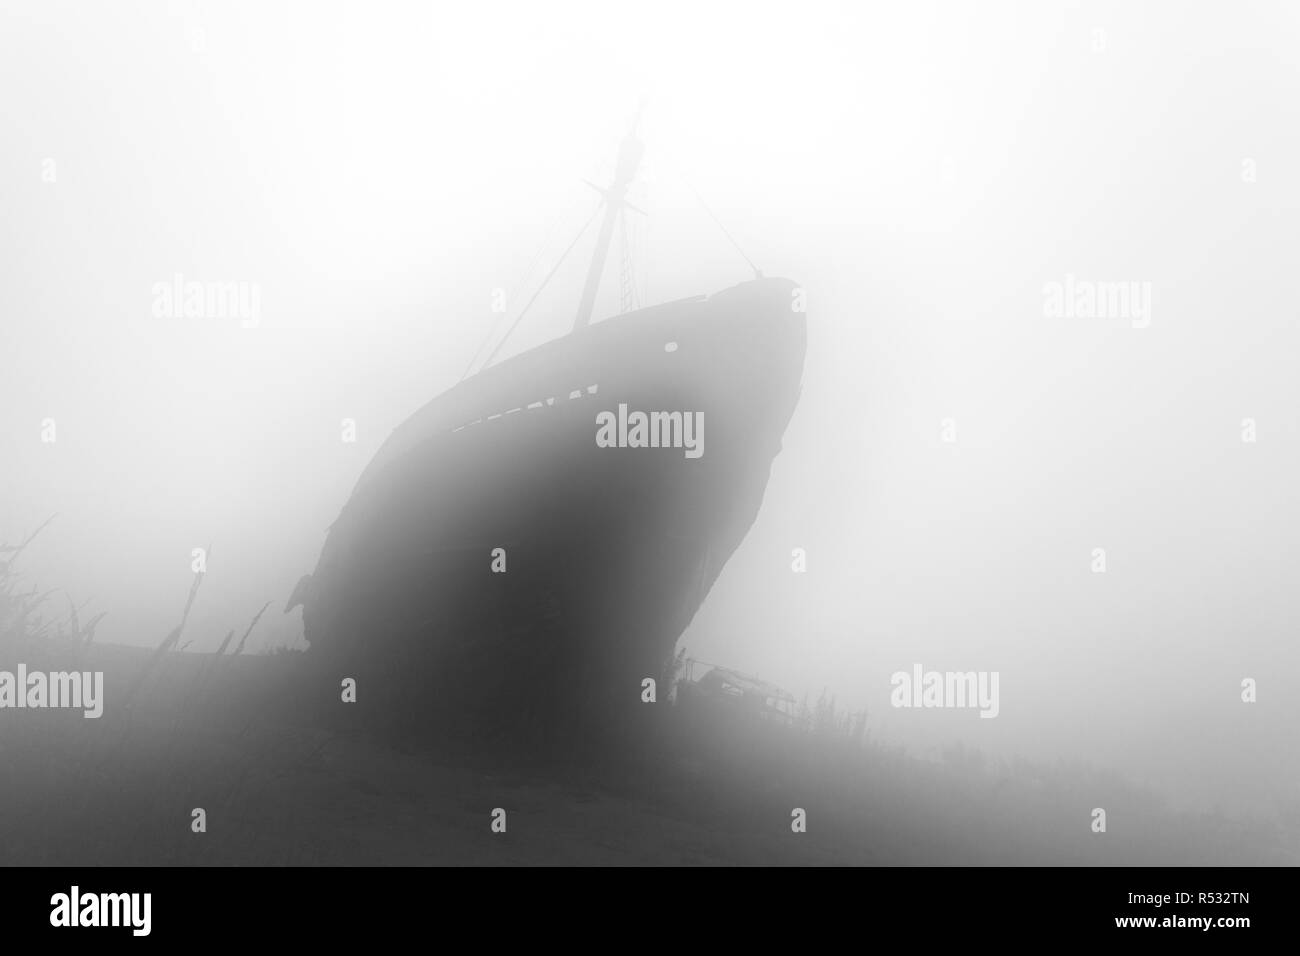 Old wrecked ship in the morning mist. Black and white image - Stock Image